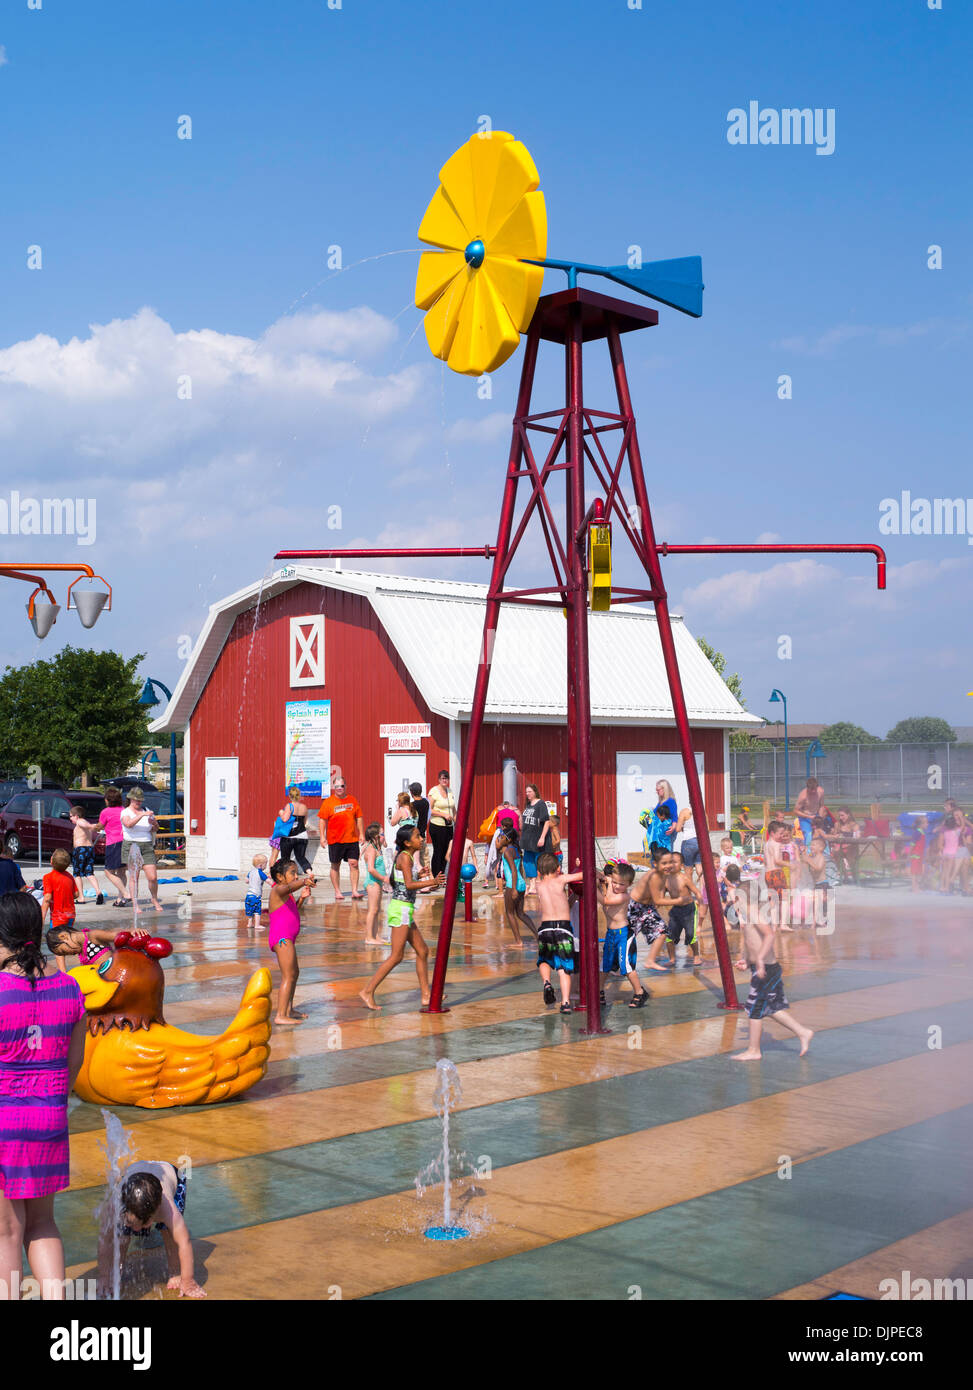 Children and adults play at the new Splash Pad located at McKee Farms Park, Fitchburg, Wisconsin, USA - Stock Image